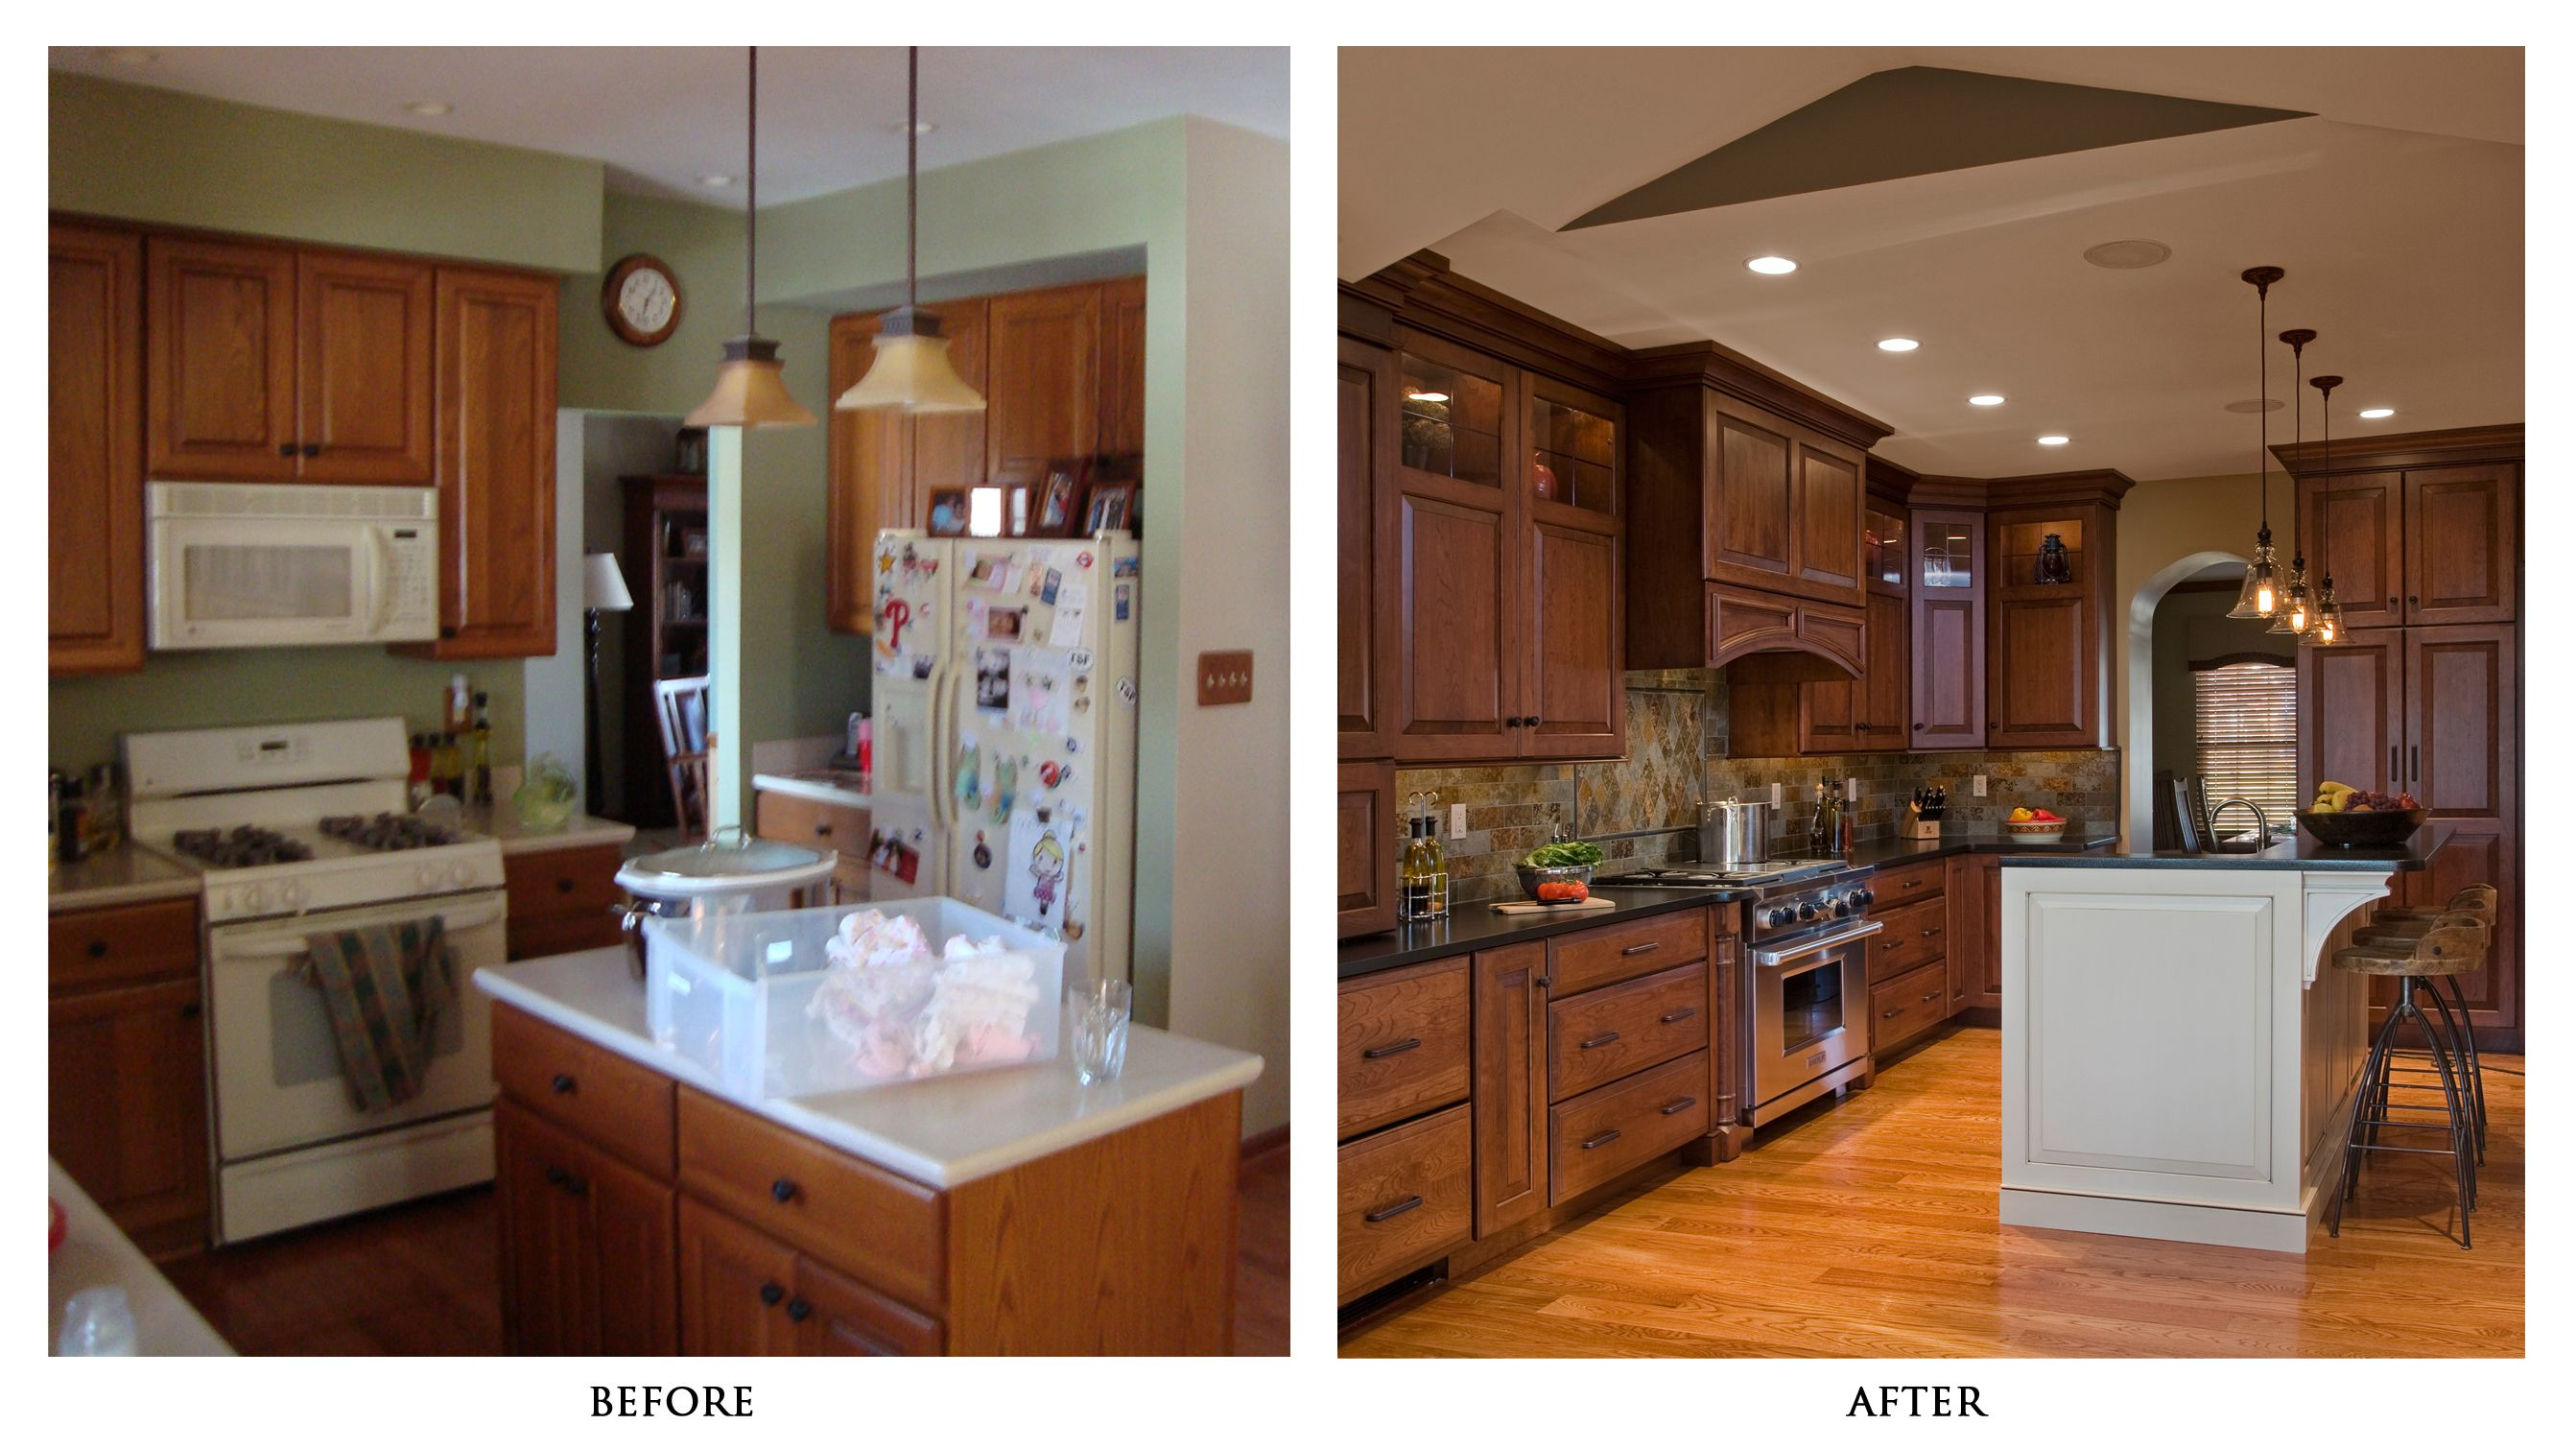 Kitchen Renovation Idea Kitchen Remodel Before And After Google Search 1960s Remodel